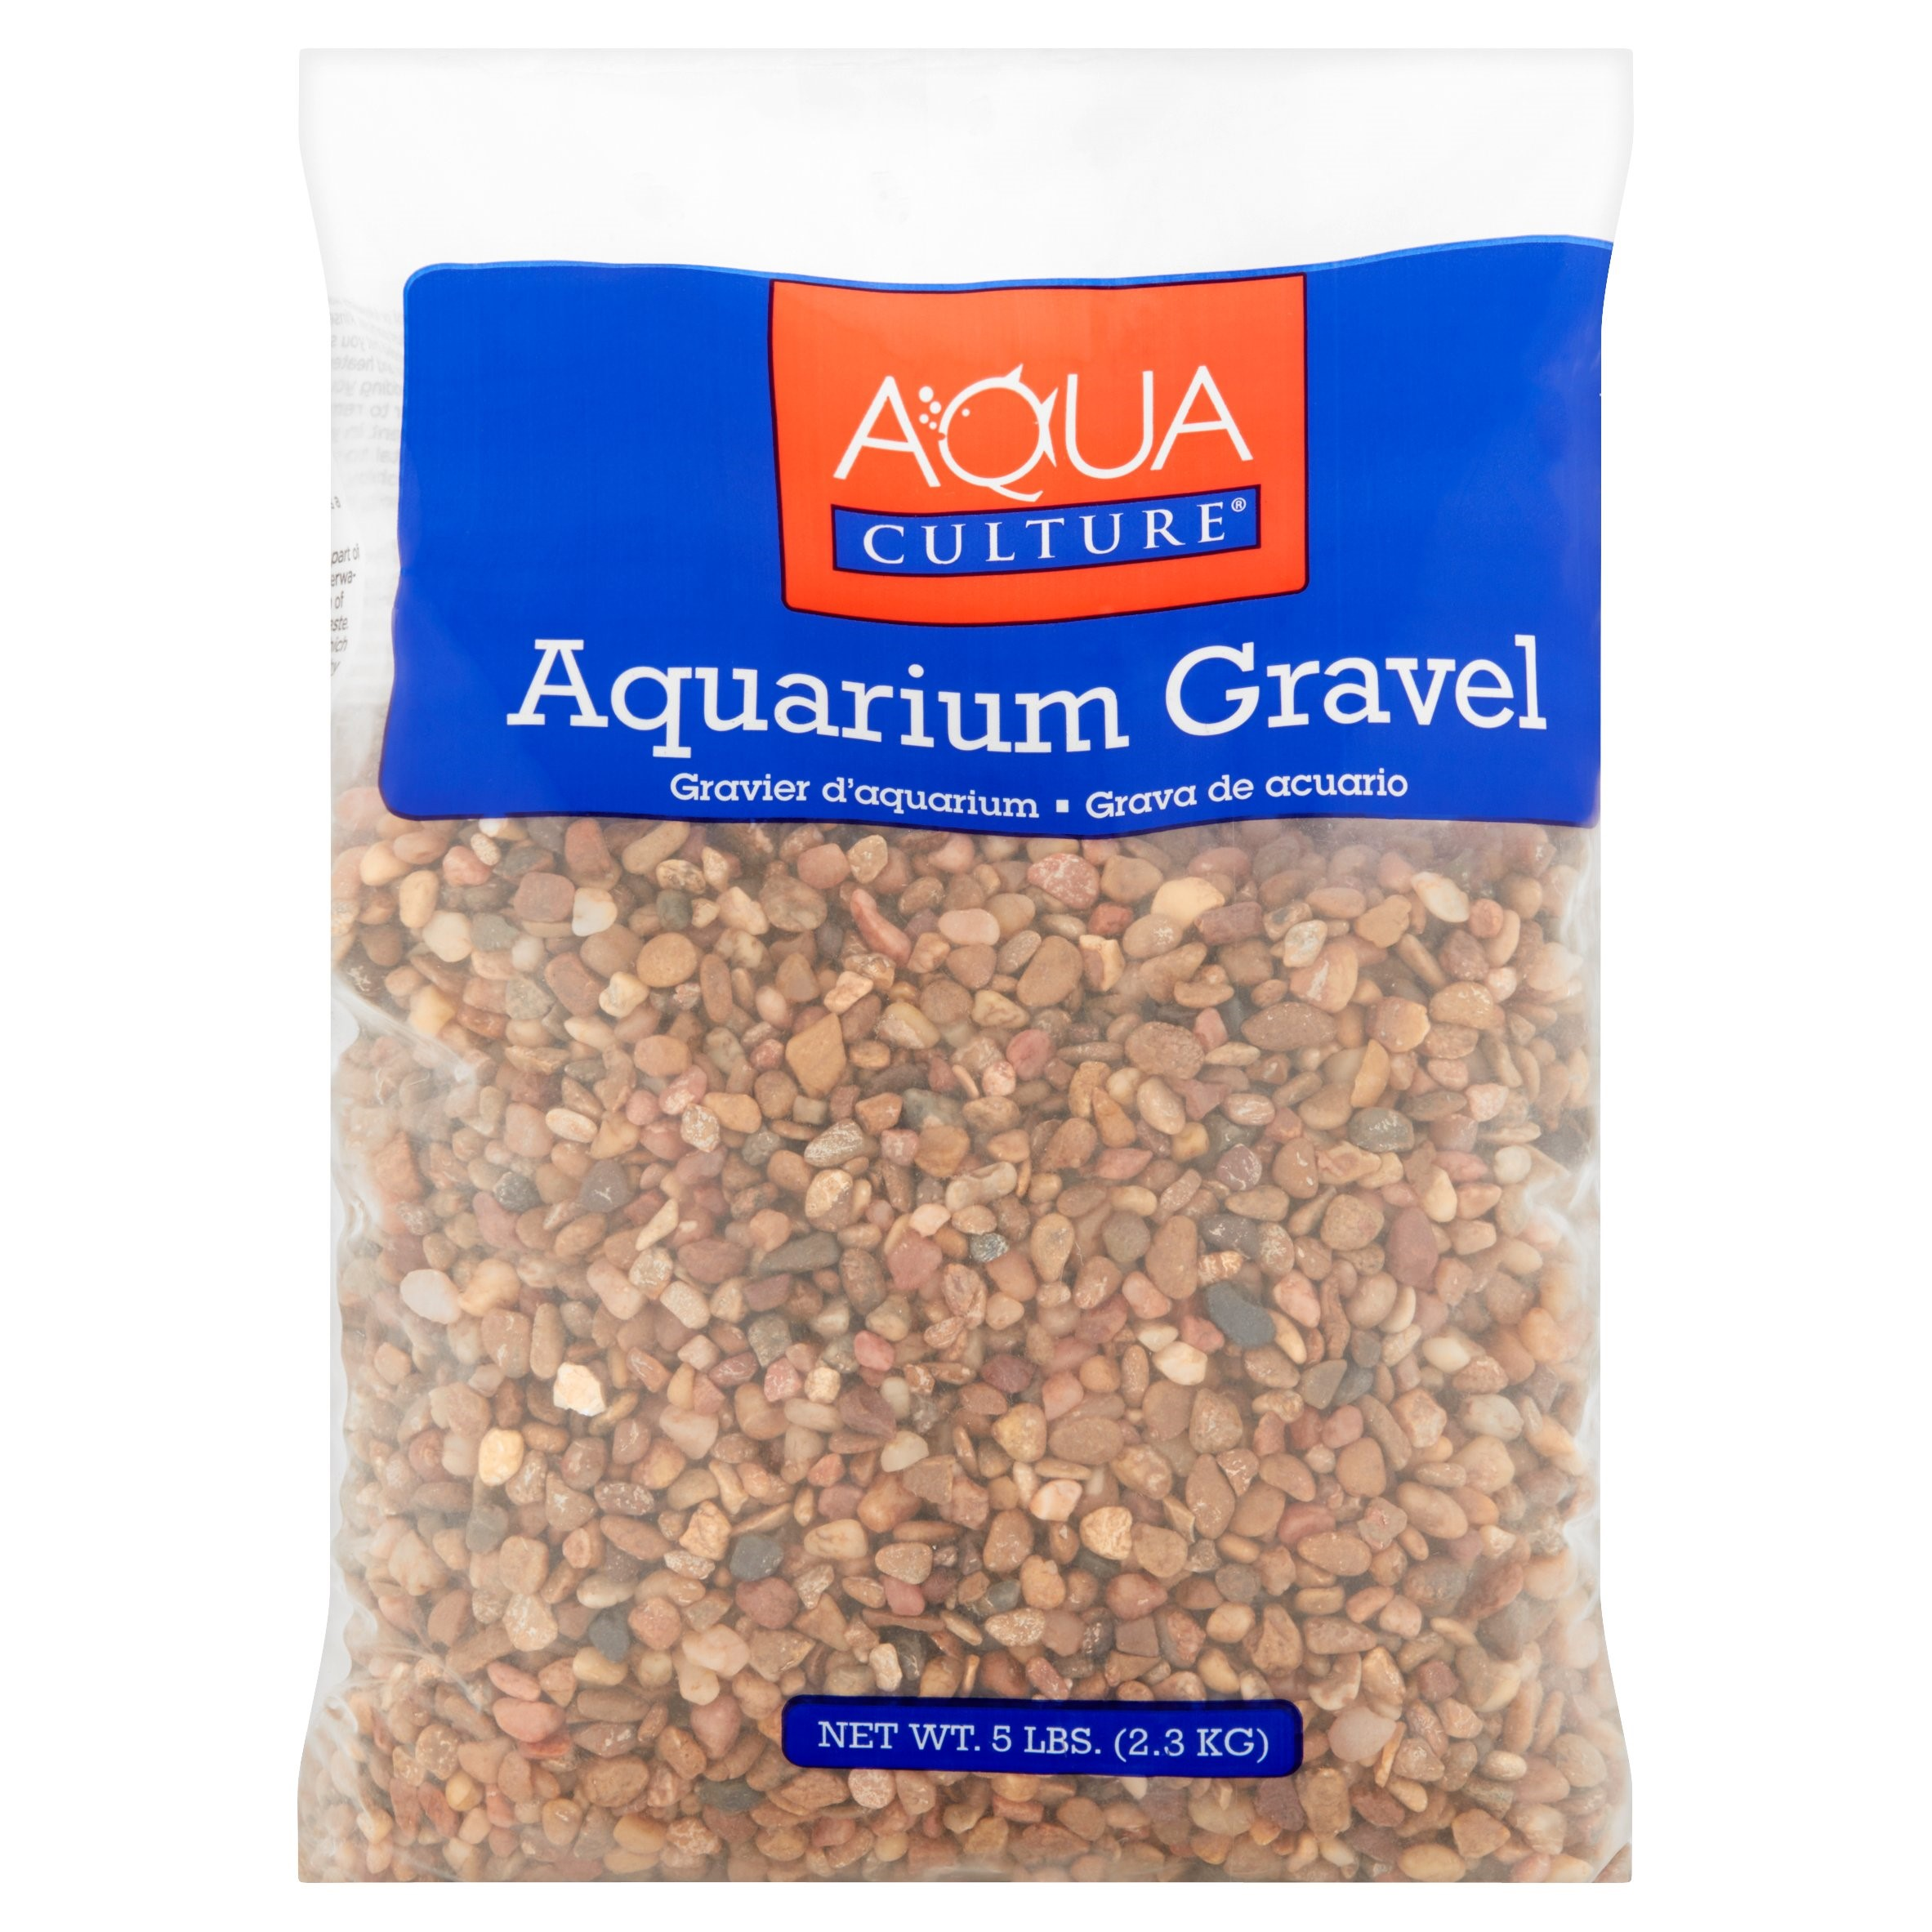 Aqua Culture Small Pebbles Neutral Aquarium Gravel, 5 lbs